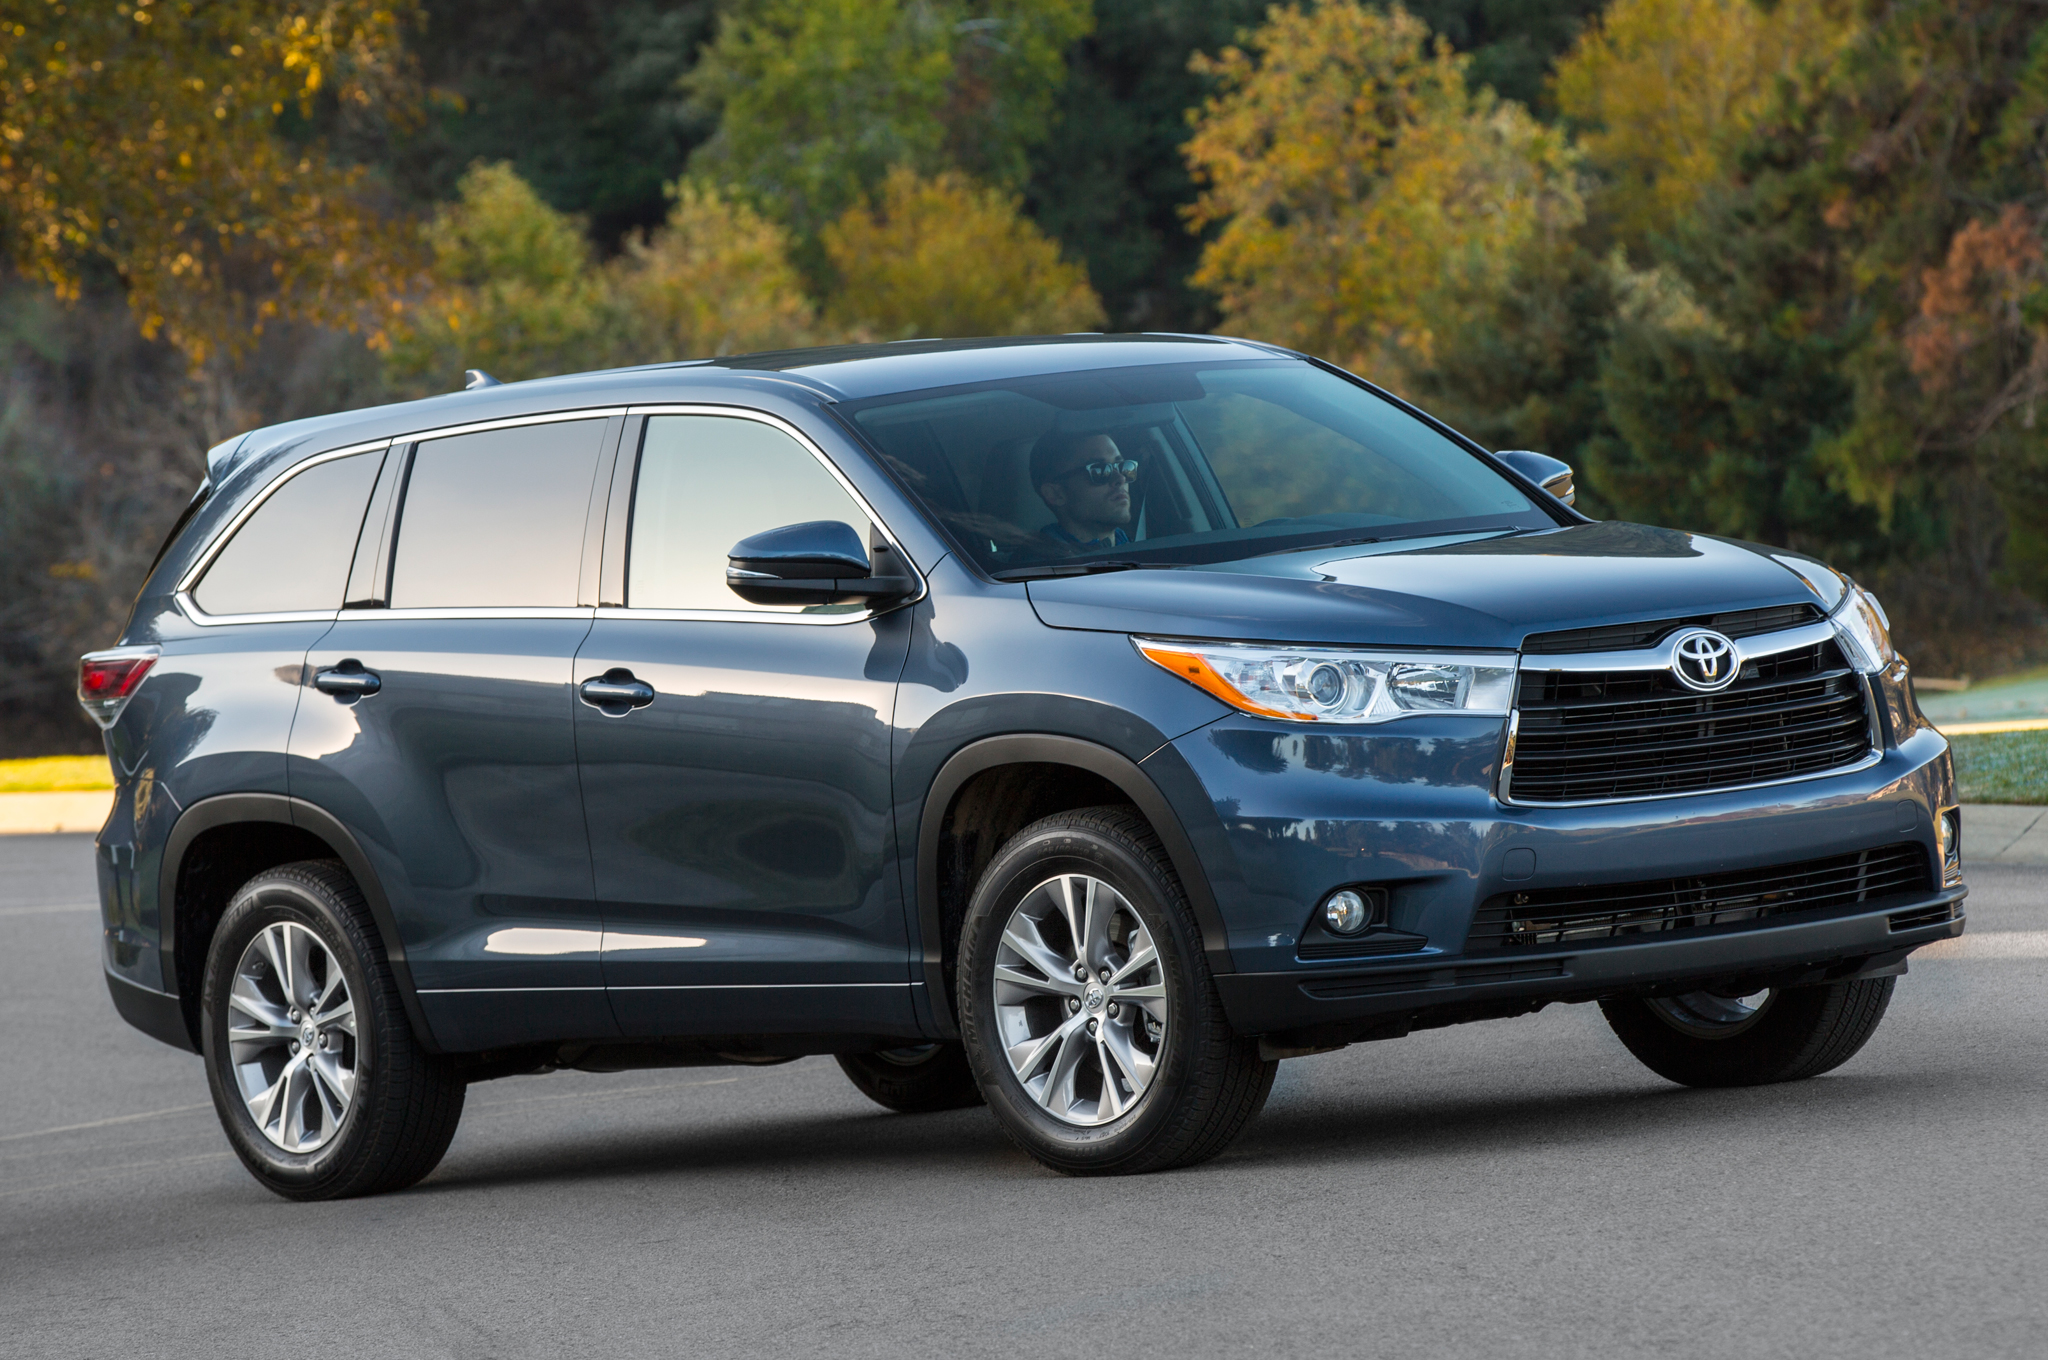 2014 Toyota Highlander Fuse Diagram Excellent Electrical Wiring 2013 F450 Box Recalled For Problem With Seat Belt Motor Trend Rh Motortrend Com 2015